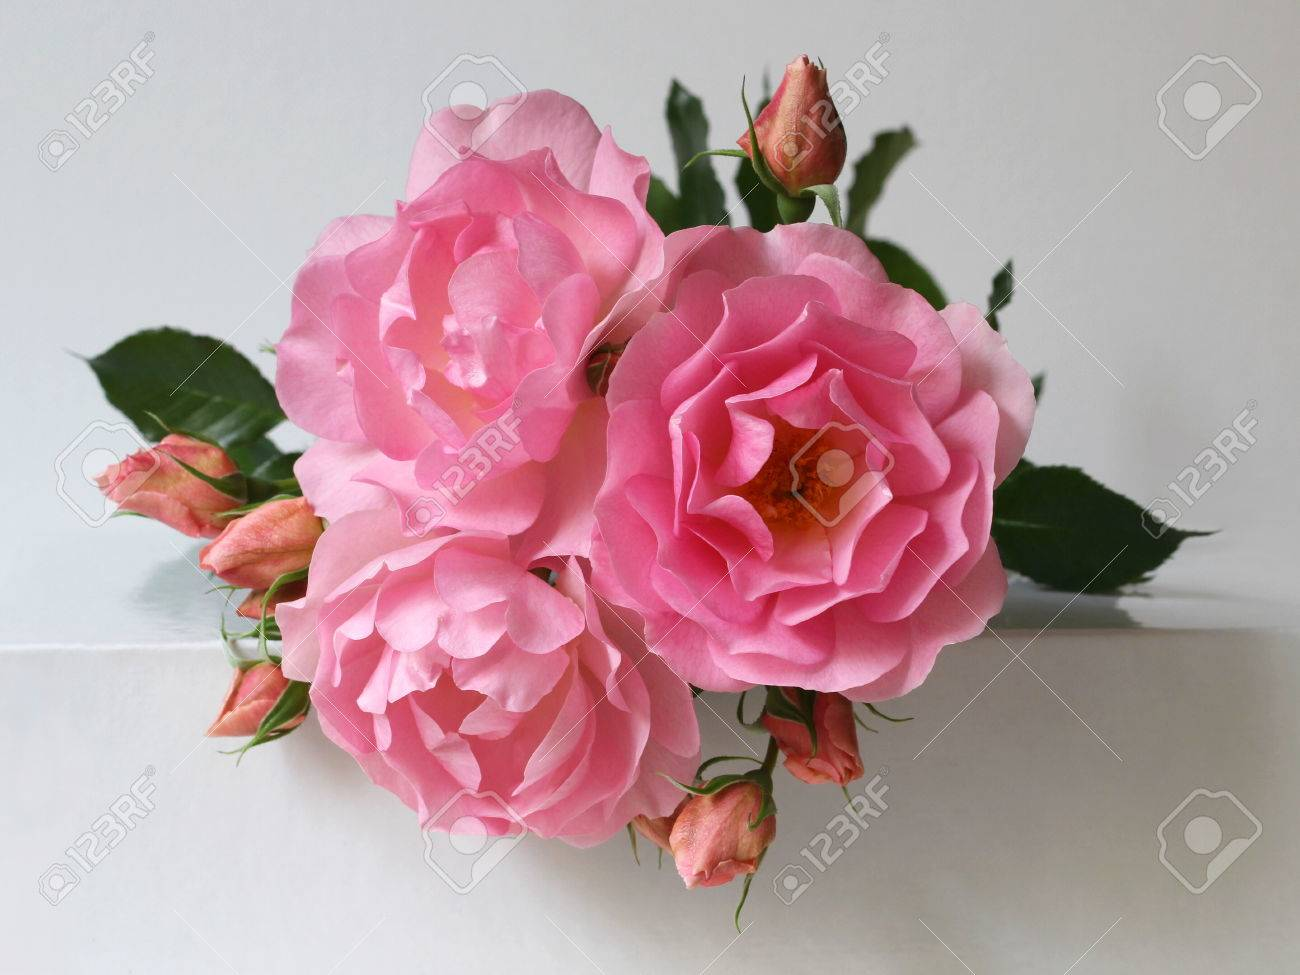 Pink Roses On A White Background Bunch Of Blooming Flowers Stock